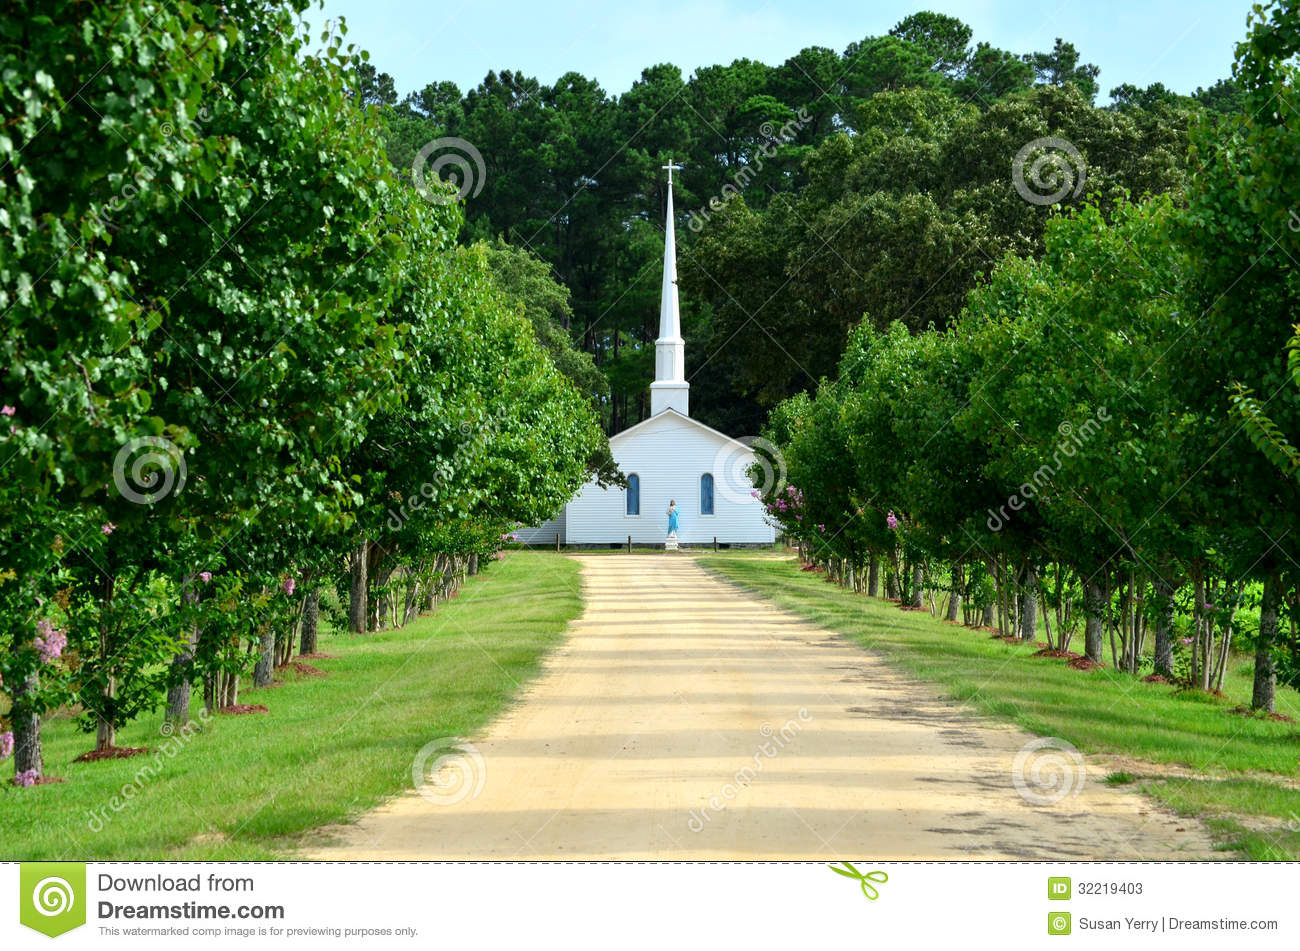 church road black personals Church of christ singles site that allows you to meet and chat with other single members of the church from all over the world.